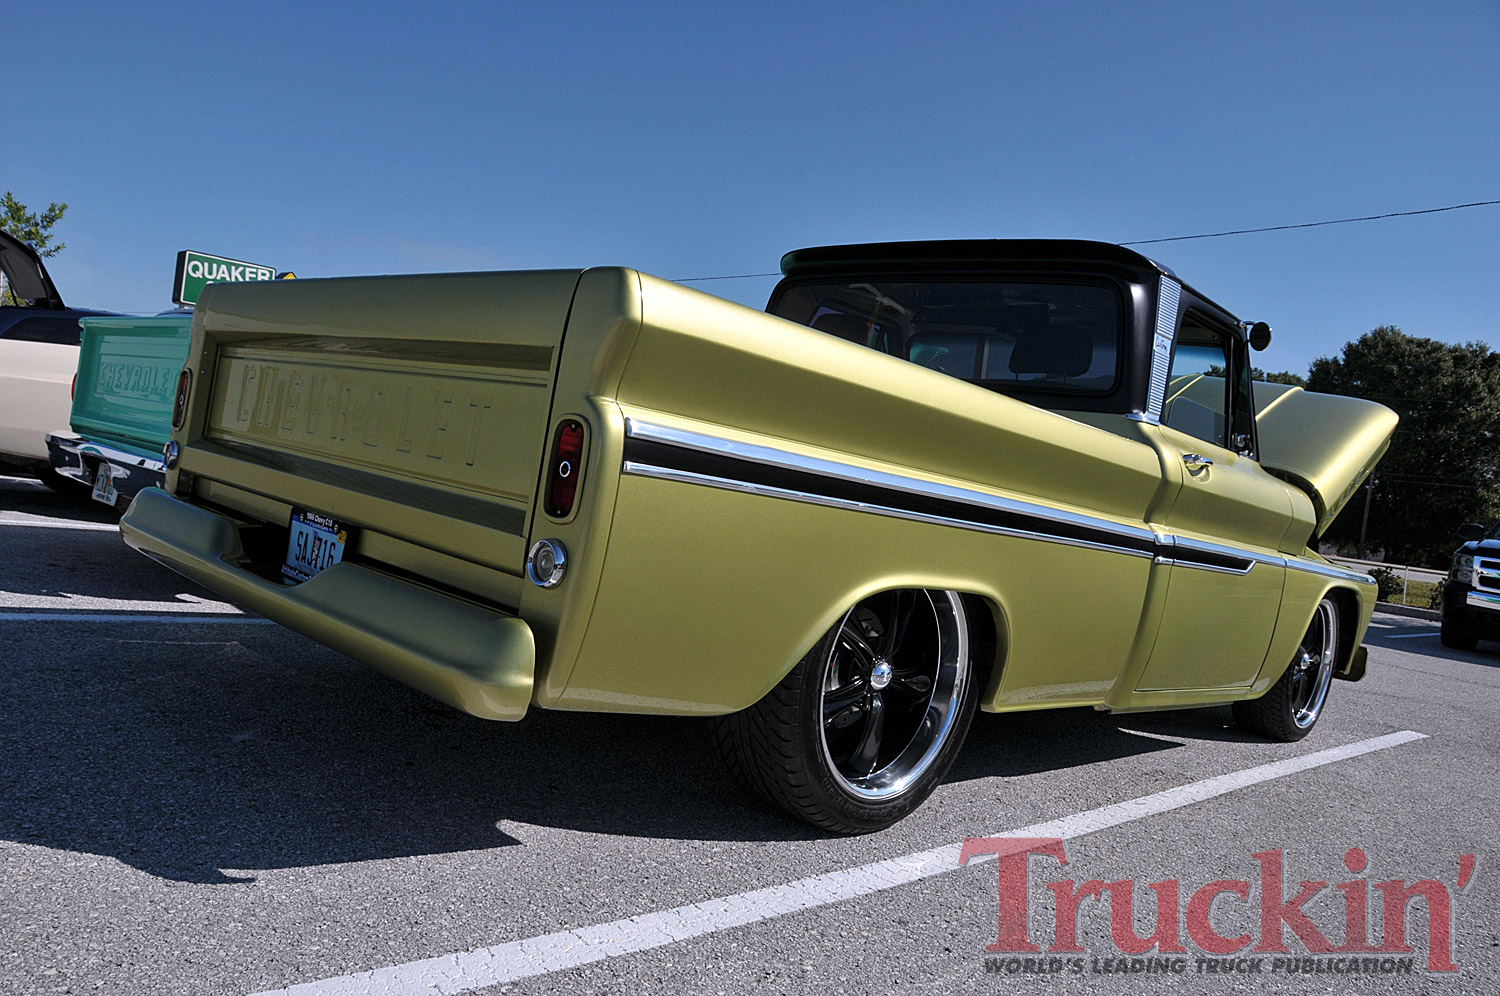 Featured Article - Custom Classic Trucks Magazine - February 2012 |  Attitude Paint Jobs - Harley and other motorcycles - flames - graphics -  autos, trucks, ...